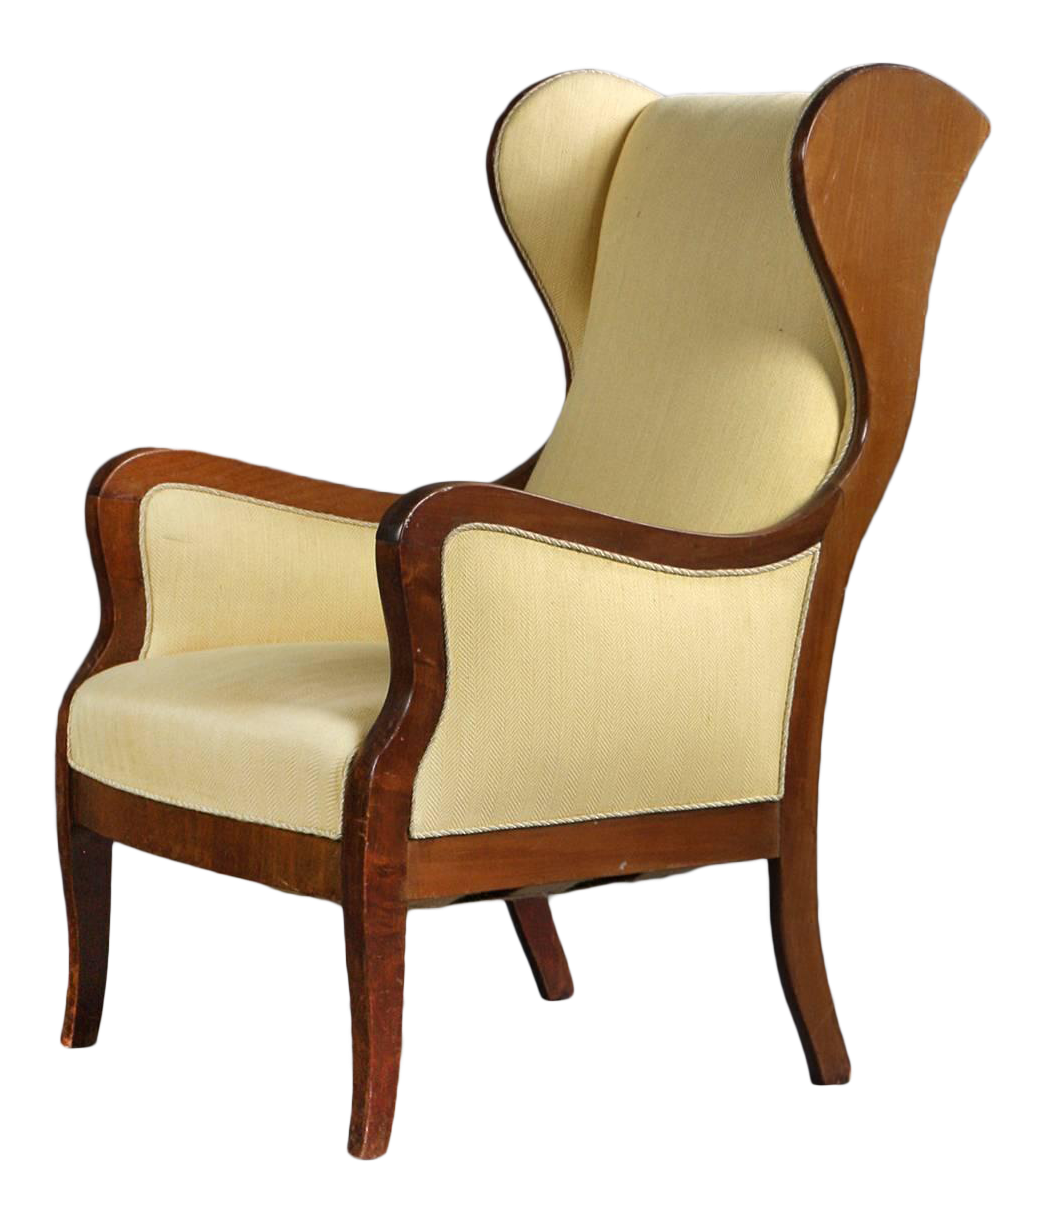 Wingback Chair In Mahogany And Wool By Frits Henningsen, Denmark 1940s For  Sale